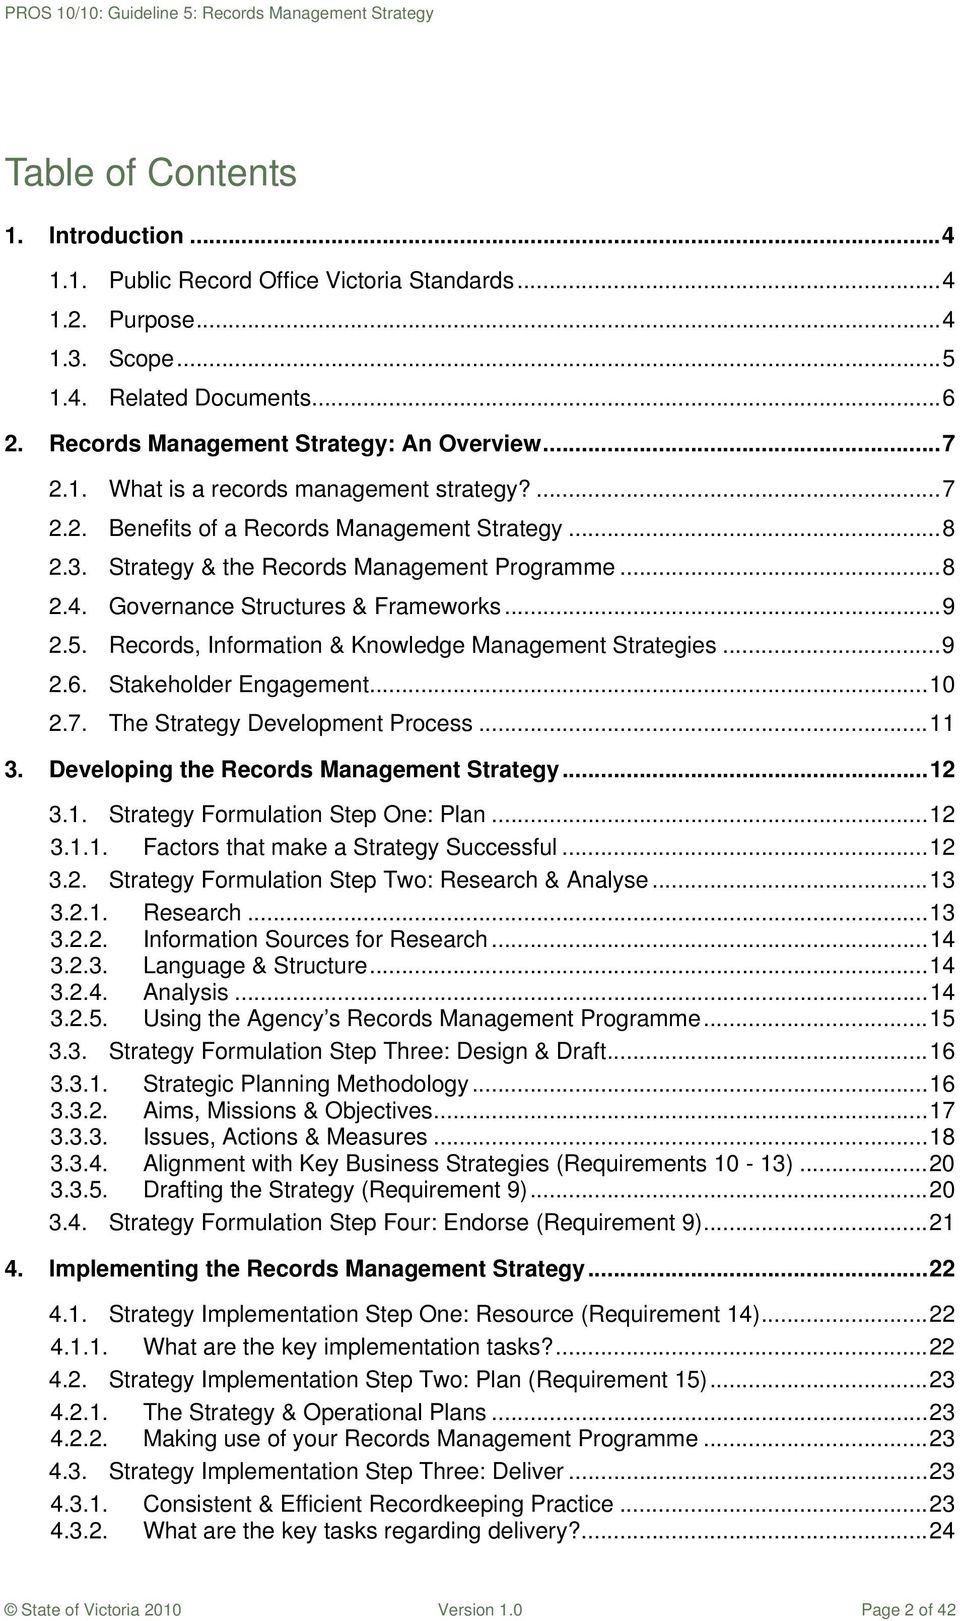 Records, Information & Knowledge Management Strategies...9 2.6. Stakeholder Engagement...10 2.7. The Strategy Development Process...11 3. Developing the Records Management Strategy...12 3.1. Strategy Formulation Step One: Plan.